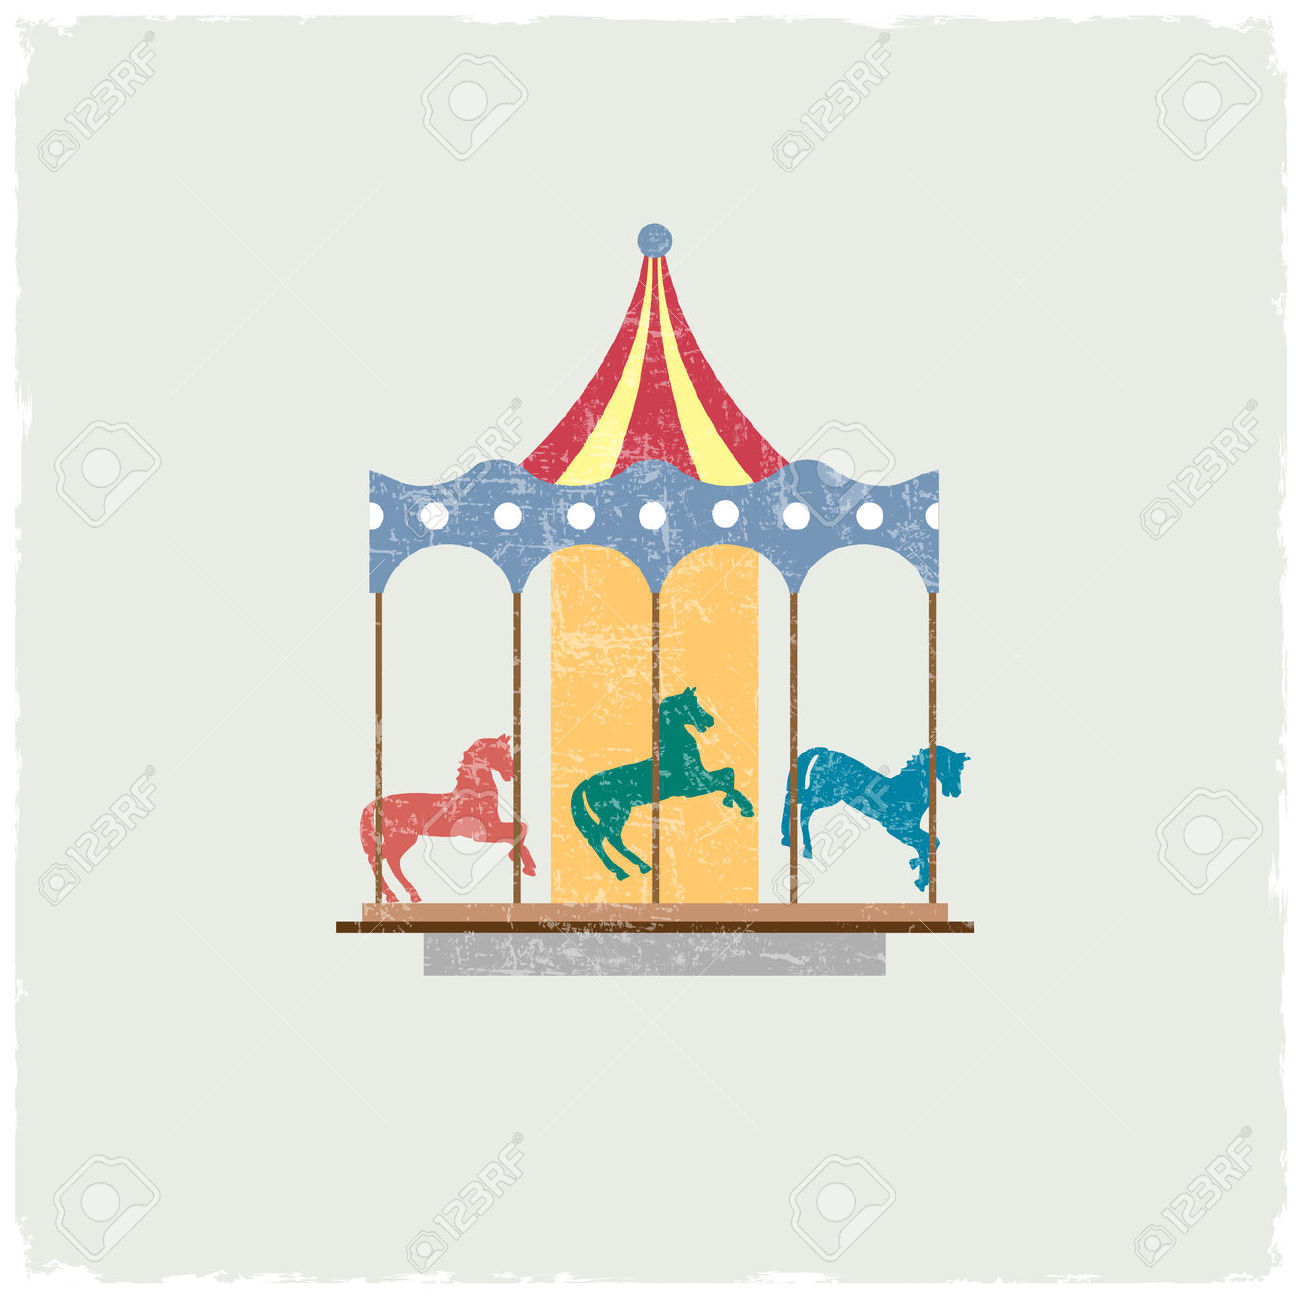 Vintage carousel clipart 11 » Clipart Station.